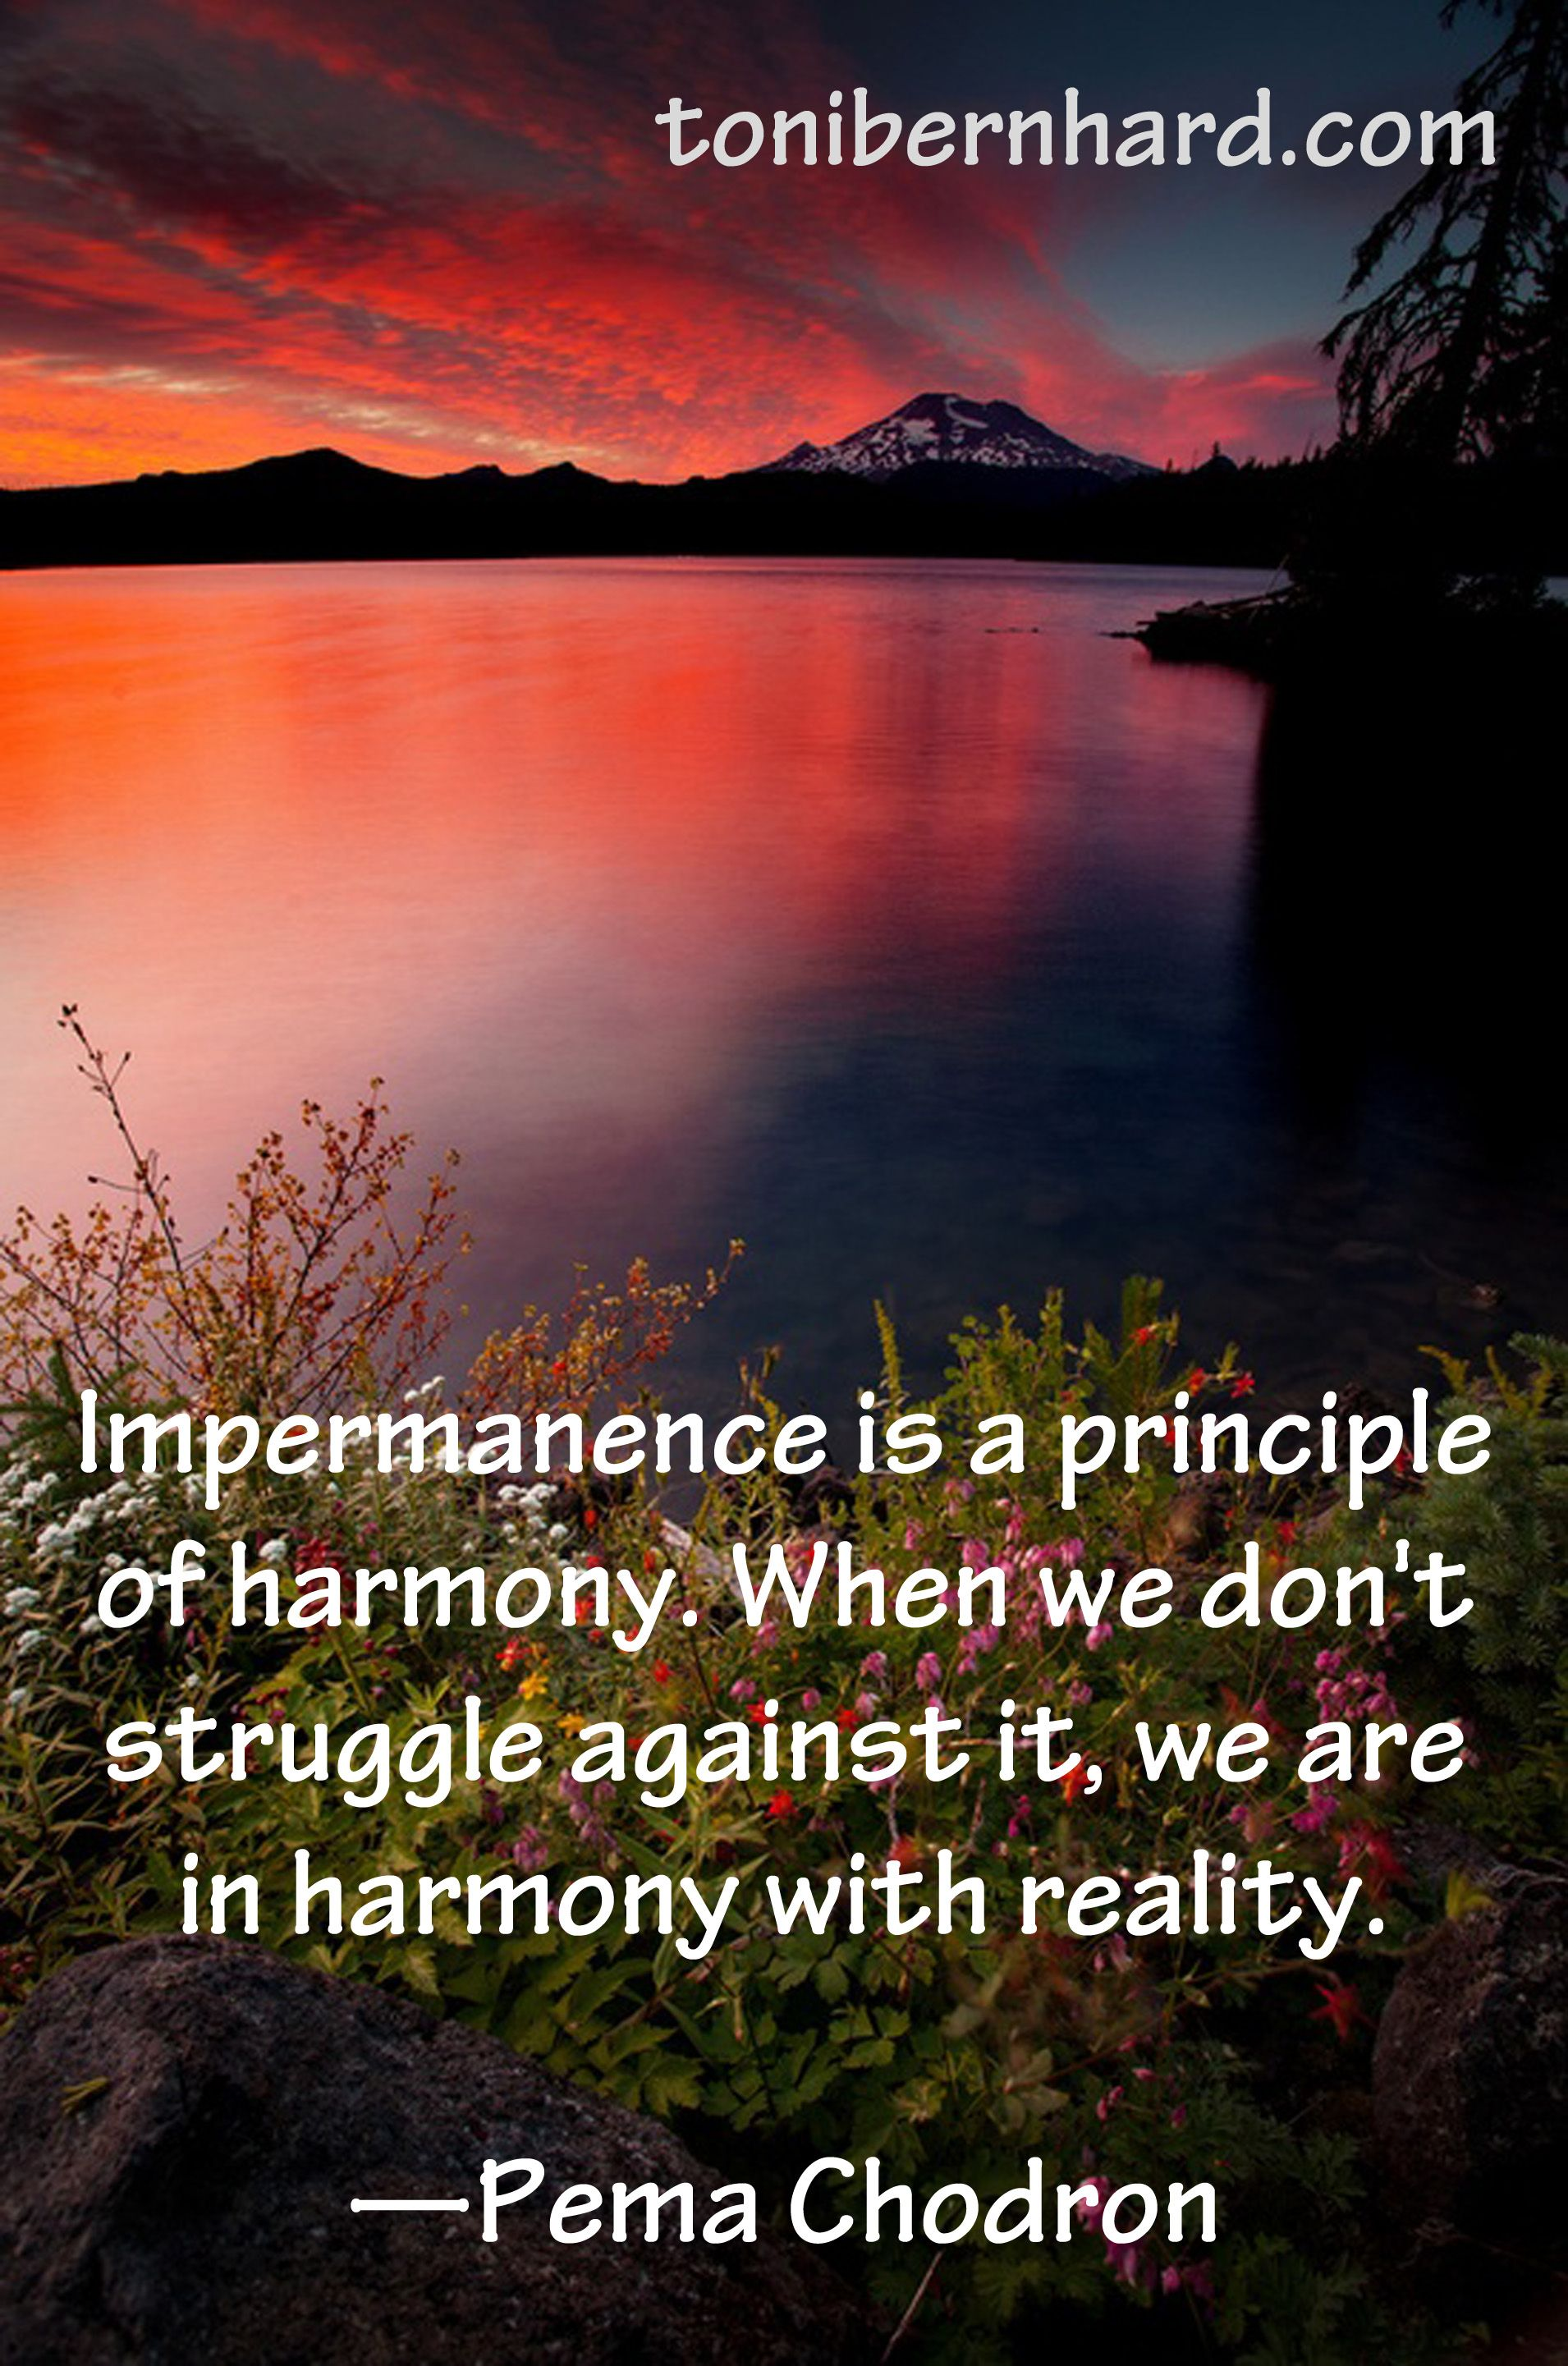 Pema Chodron Quotes Pema Chodron Be In Harmony With Realitynot Struggling With